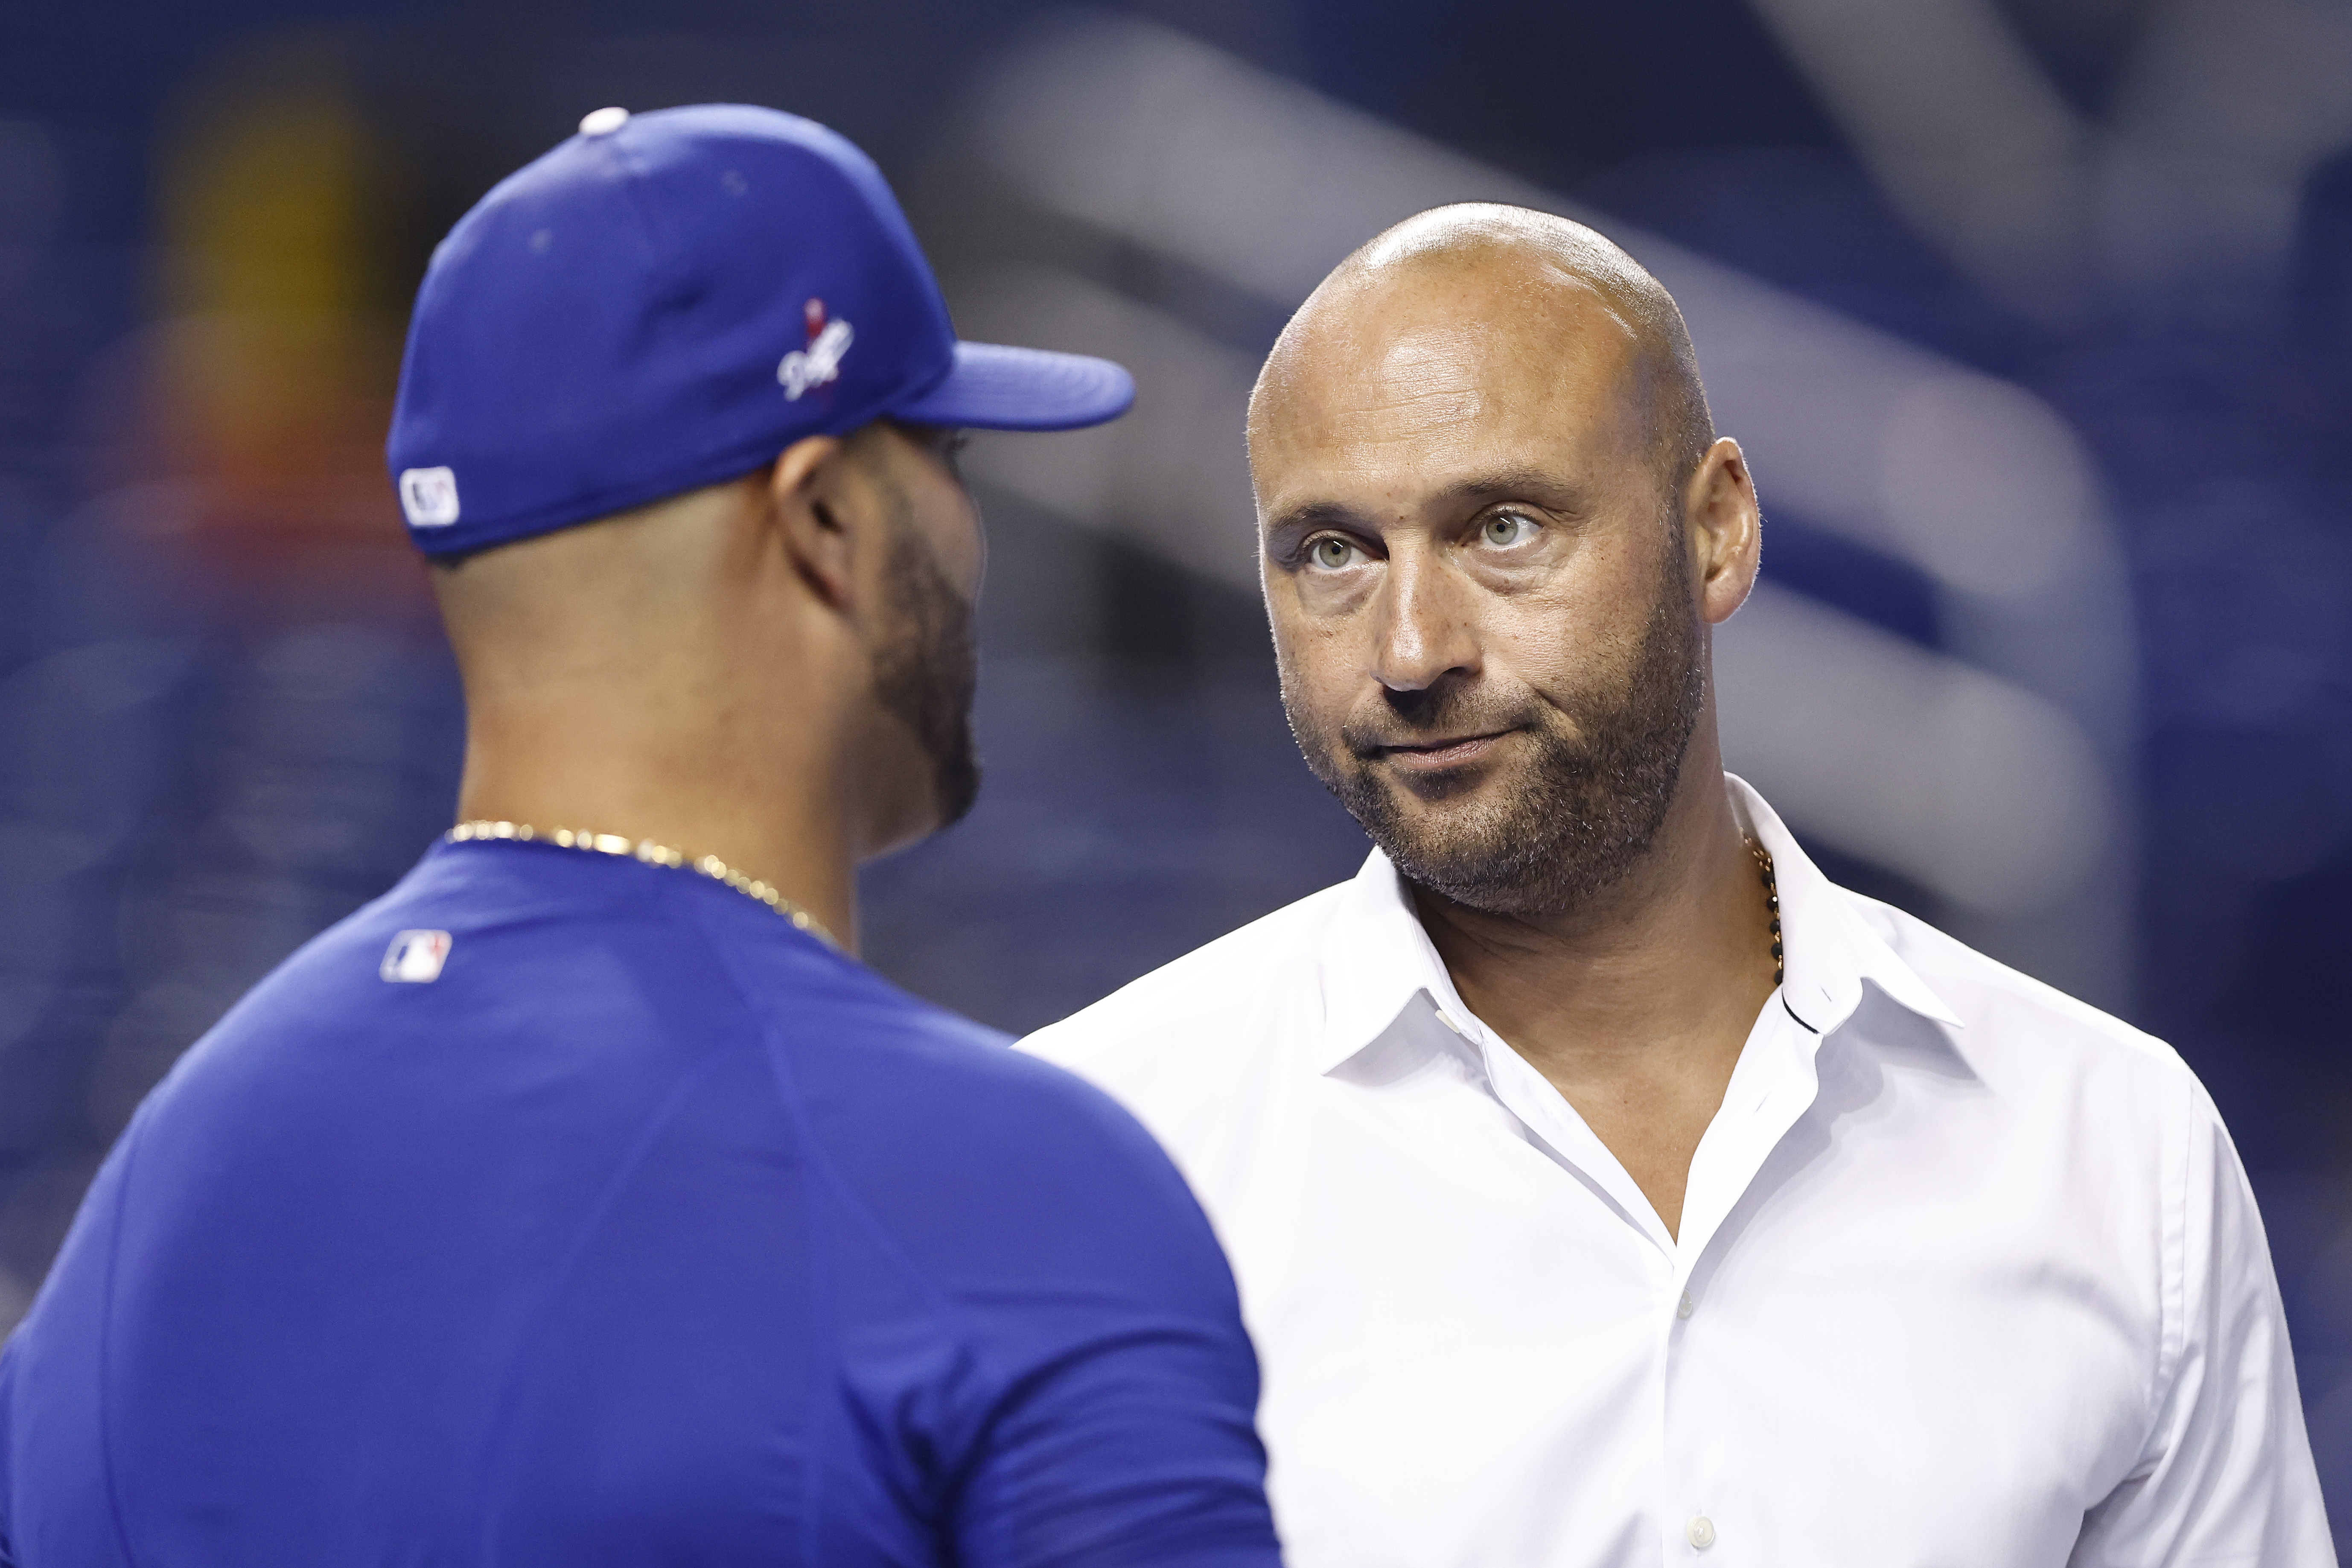 CEO Derek Jeter of the Miami Marlins talks with Albert Pujols #55 of the Los Angeles Dodgers during batting practice prior to the game at loanDepot park